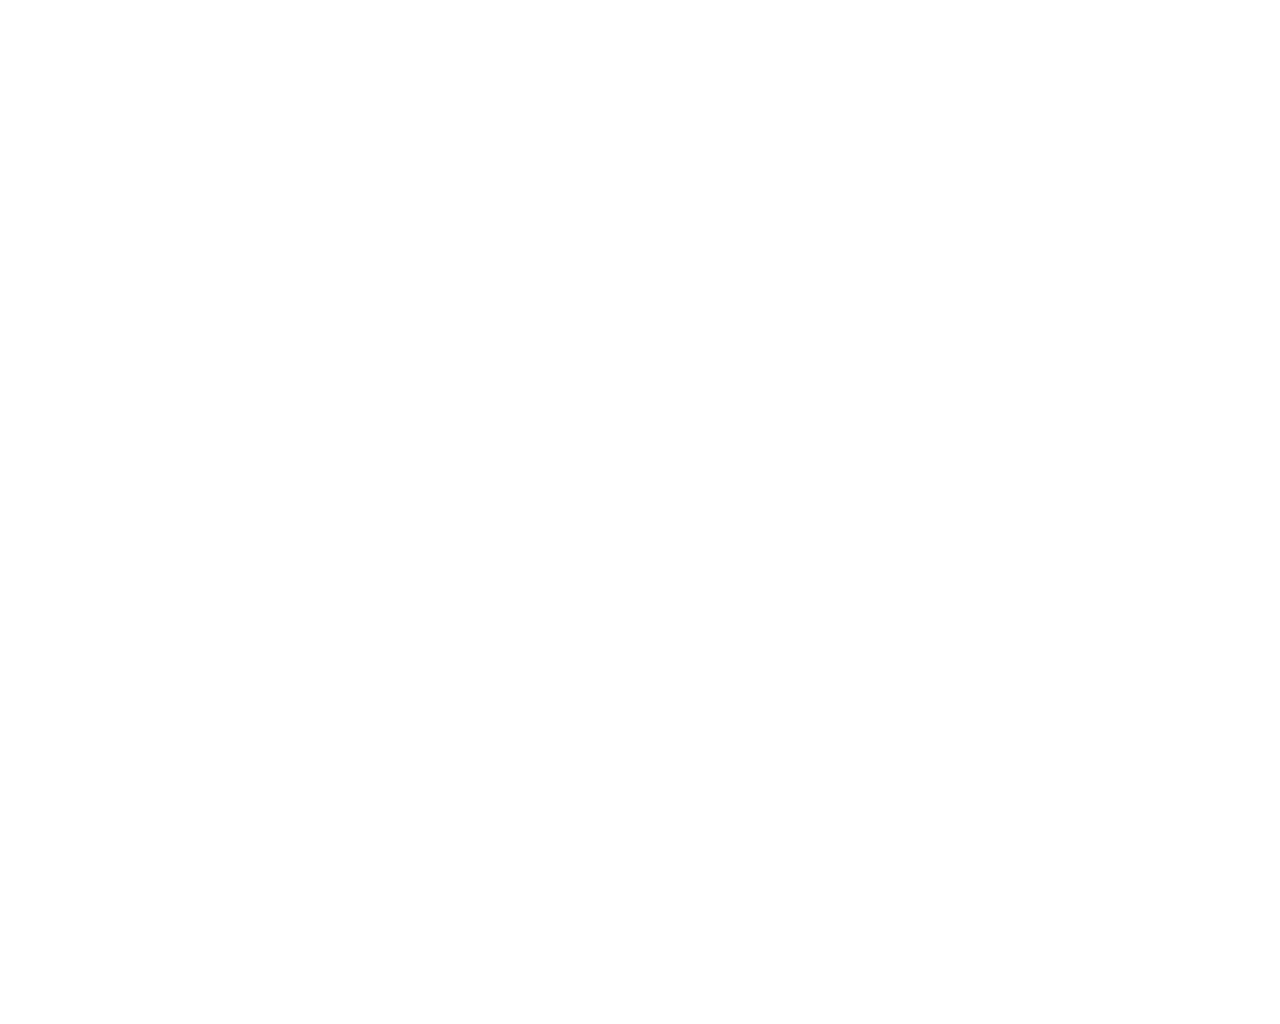 Wayside Cafe - great coffee, grilled bagels!, avocado toast, breakfast sandwiches